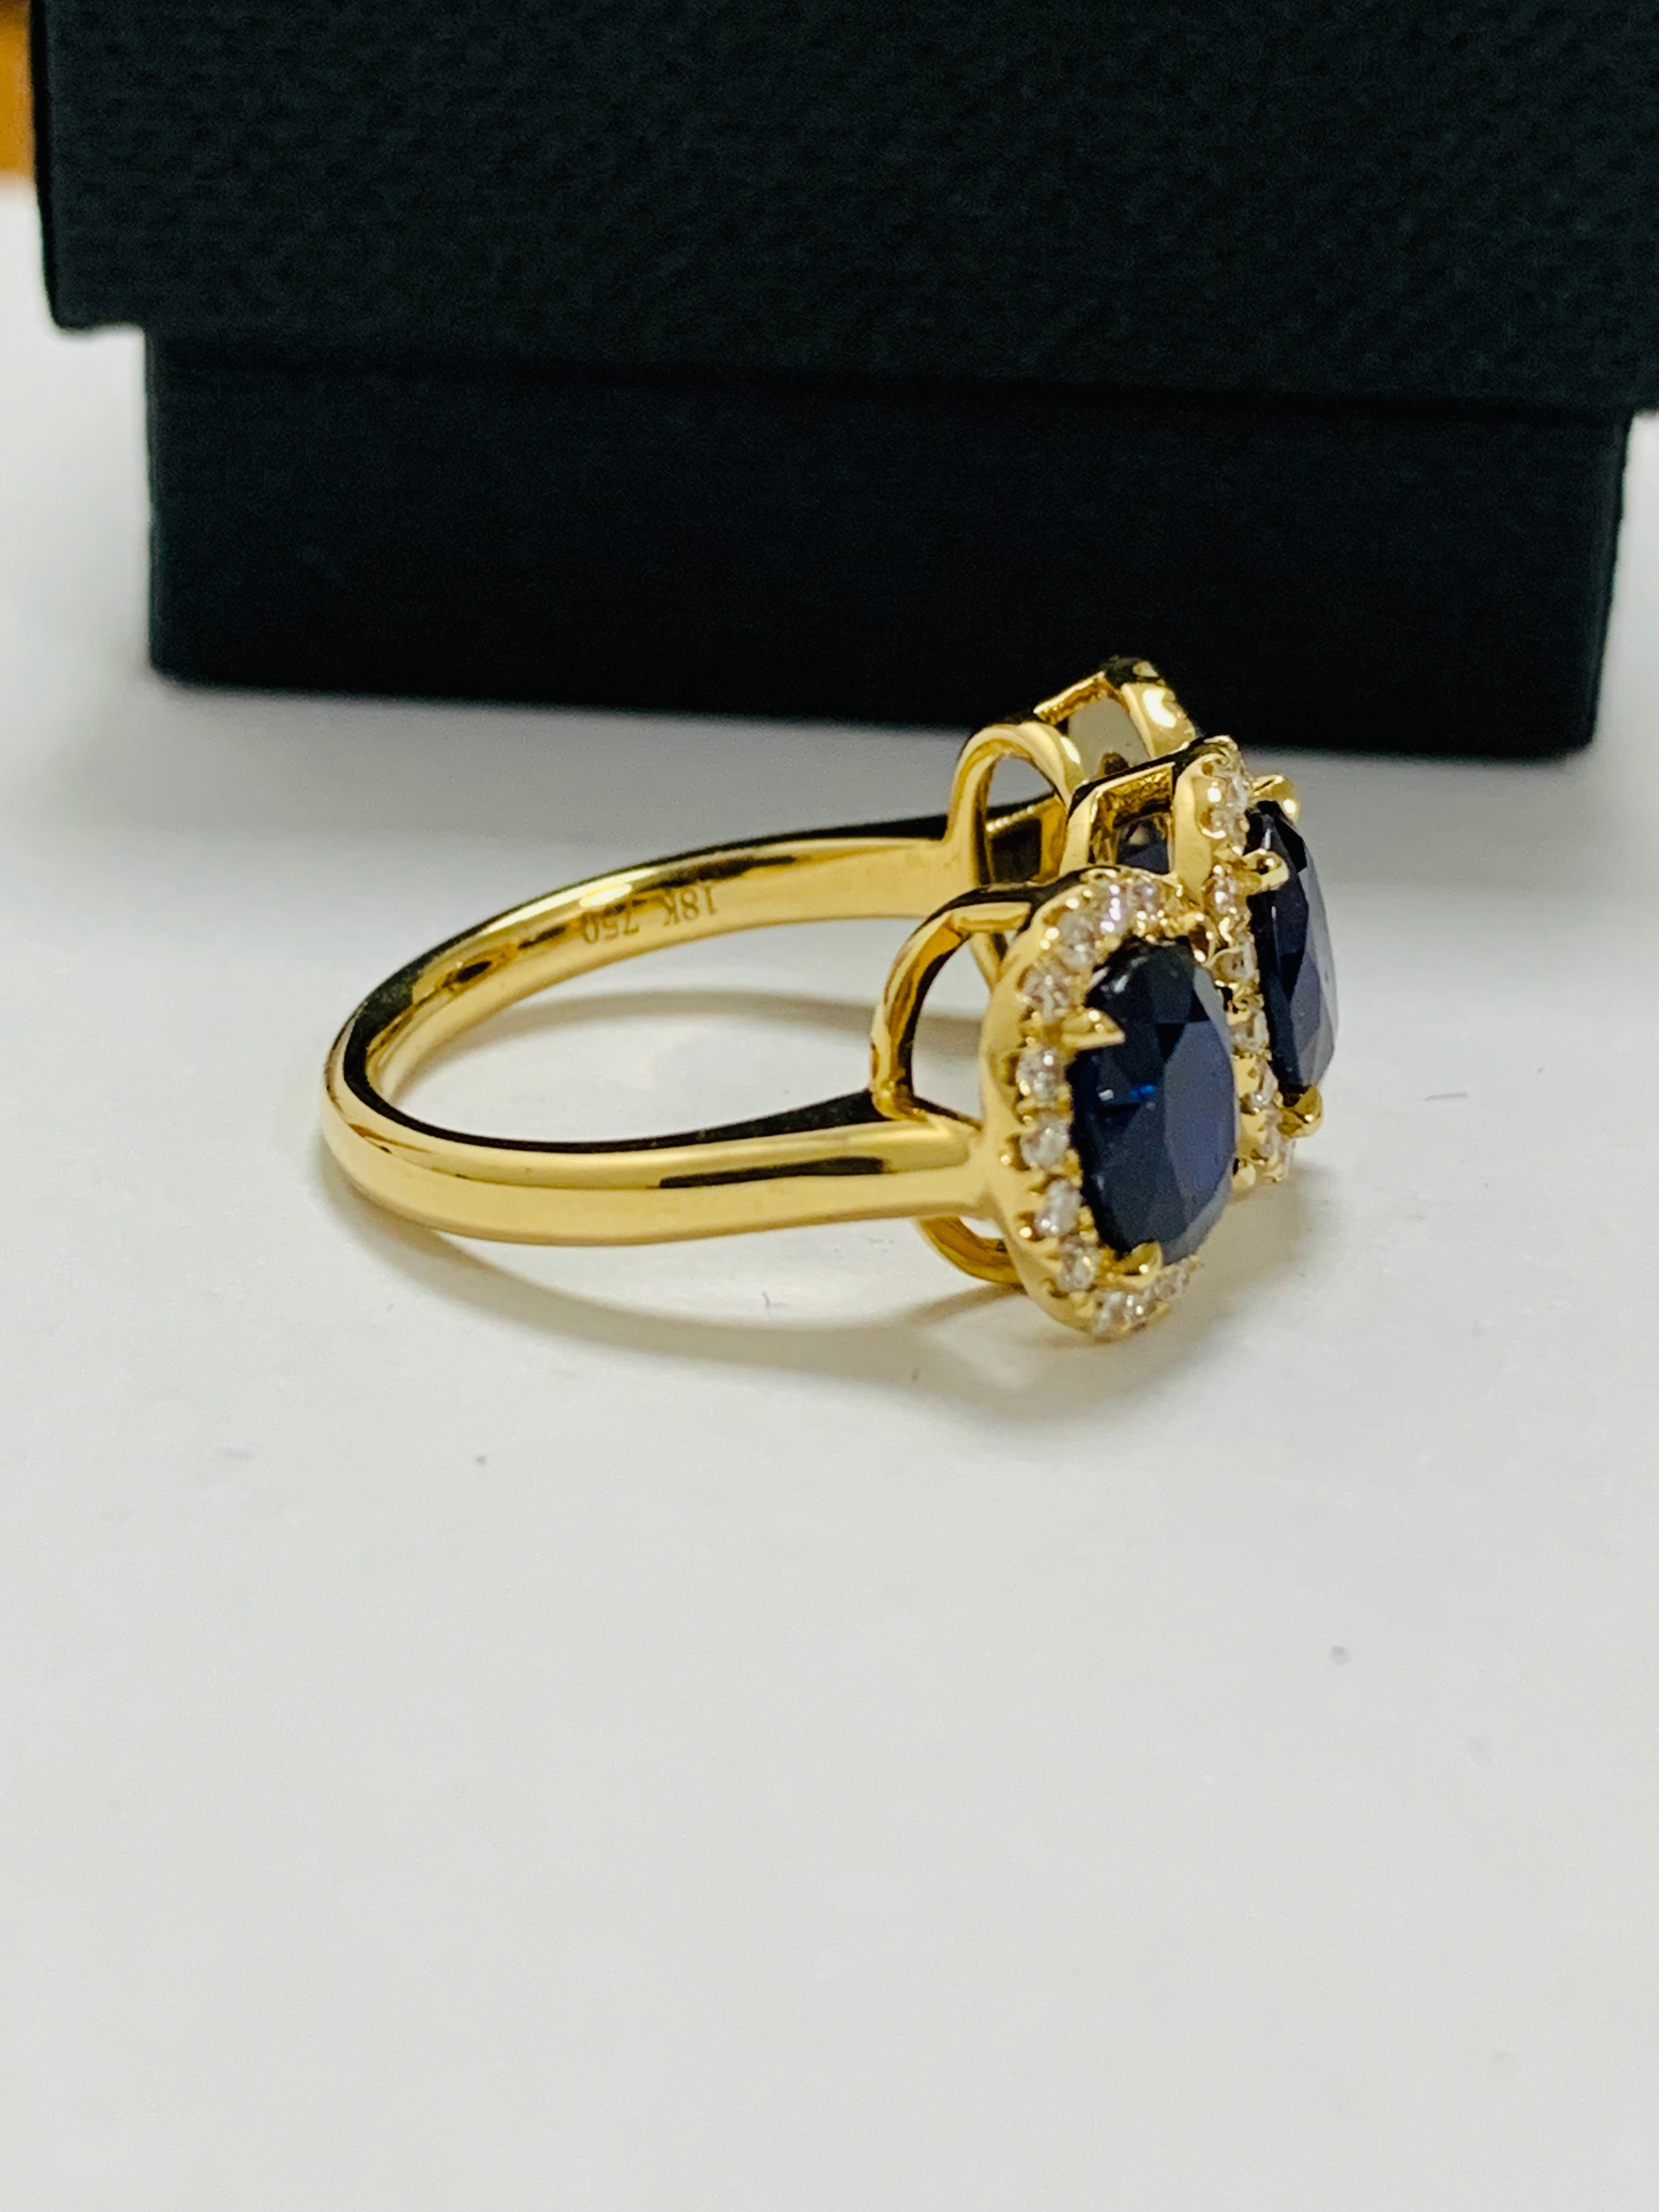 18ct yellow gold sapphire and diamond ring - Image 8 of 12